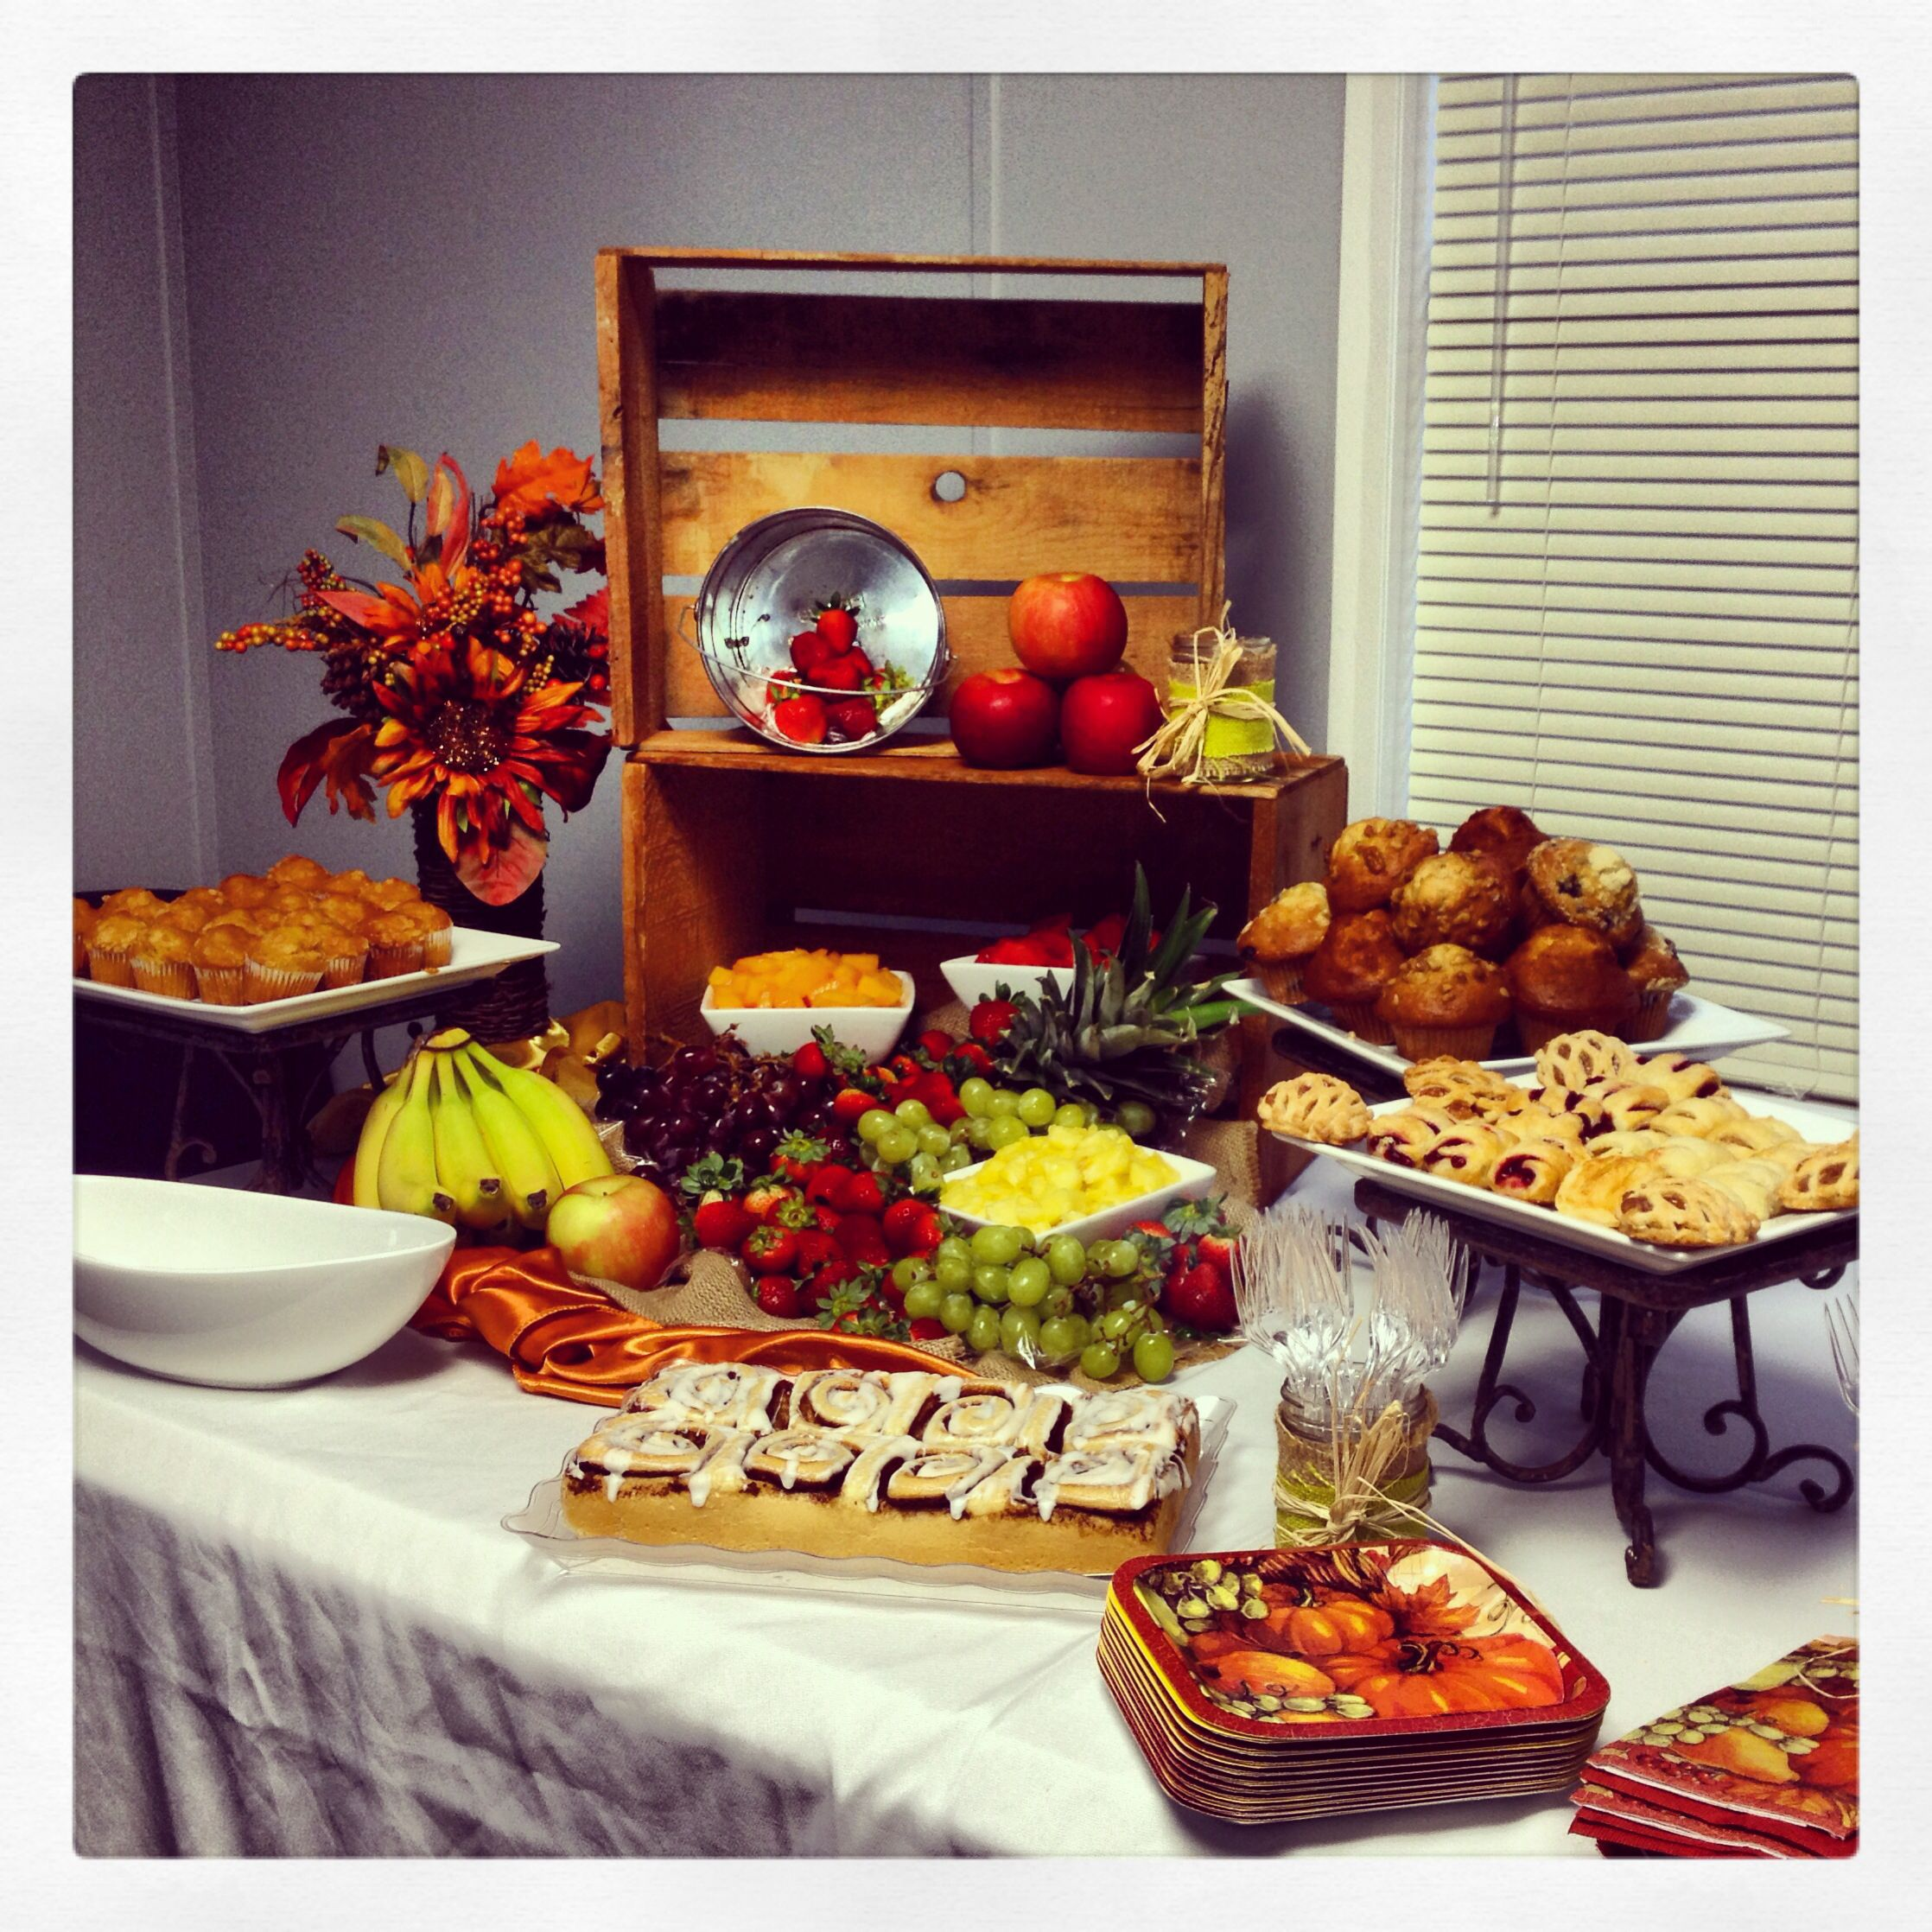 Breakfast Display I Did For A Companys Corporate Meeting